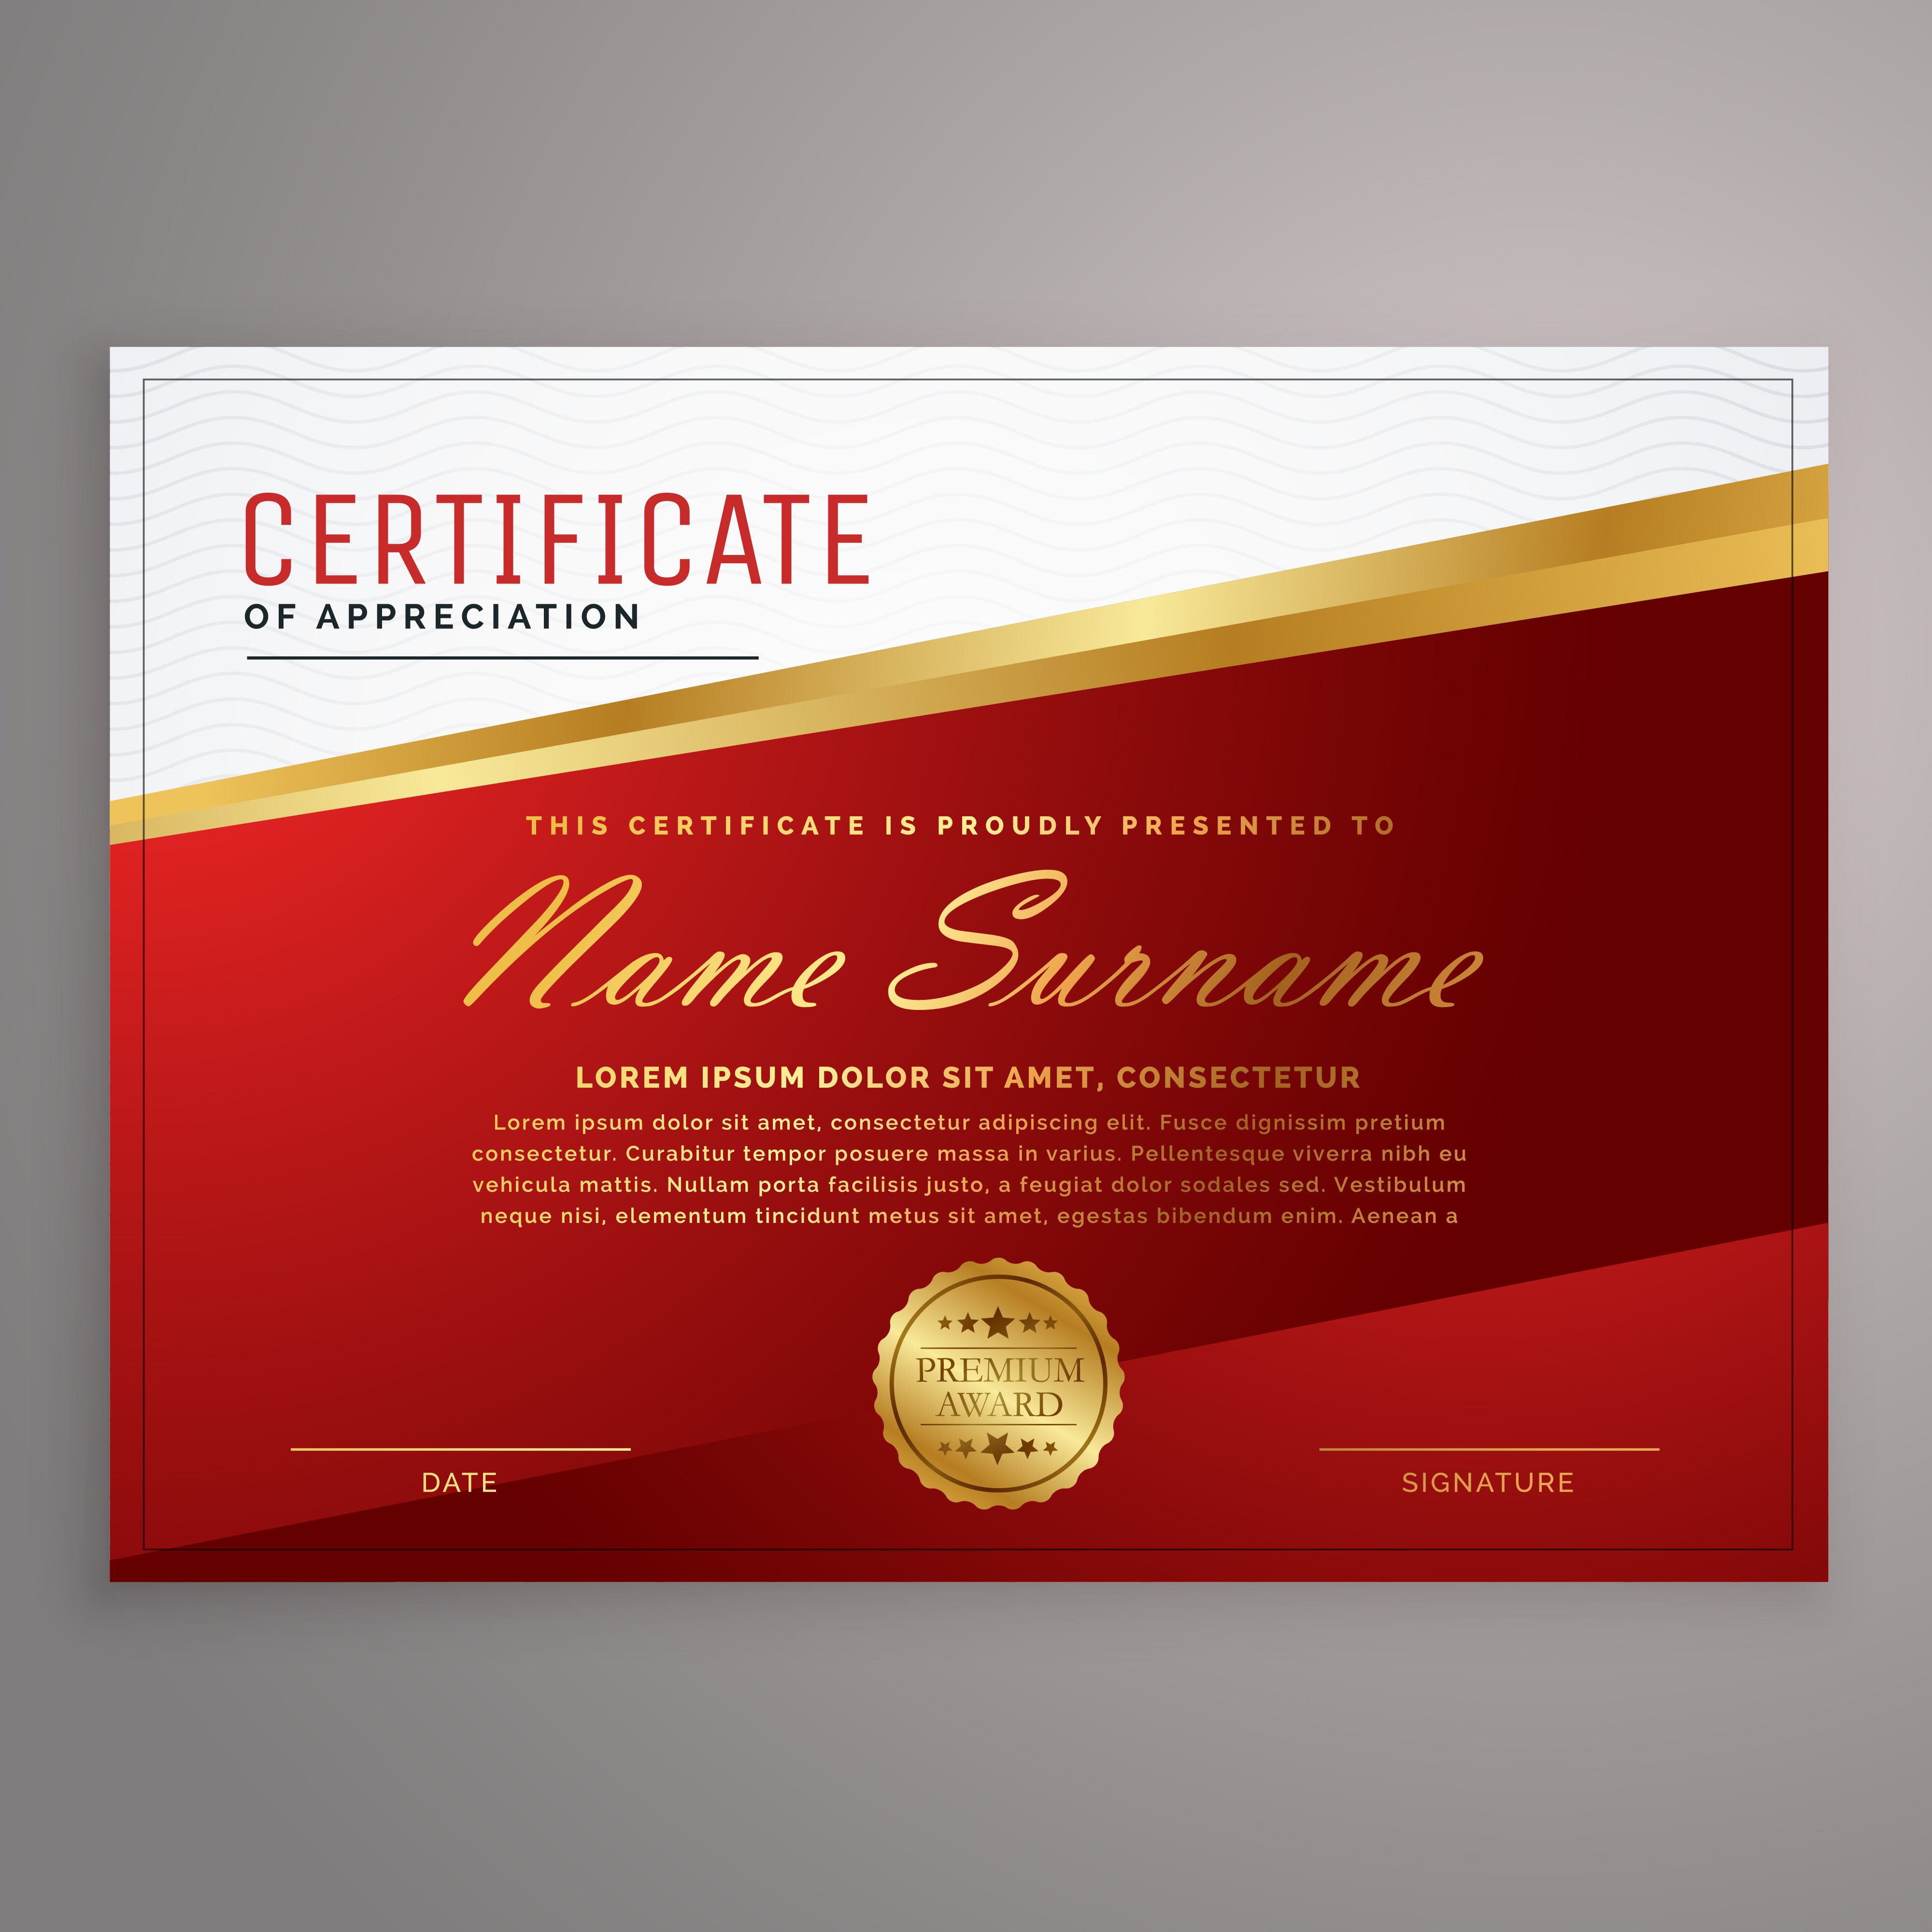 Creative Red And Golden Certificate Design Template Download Free